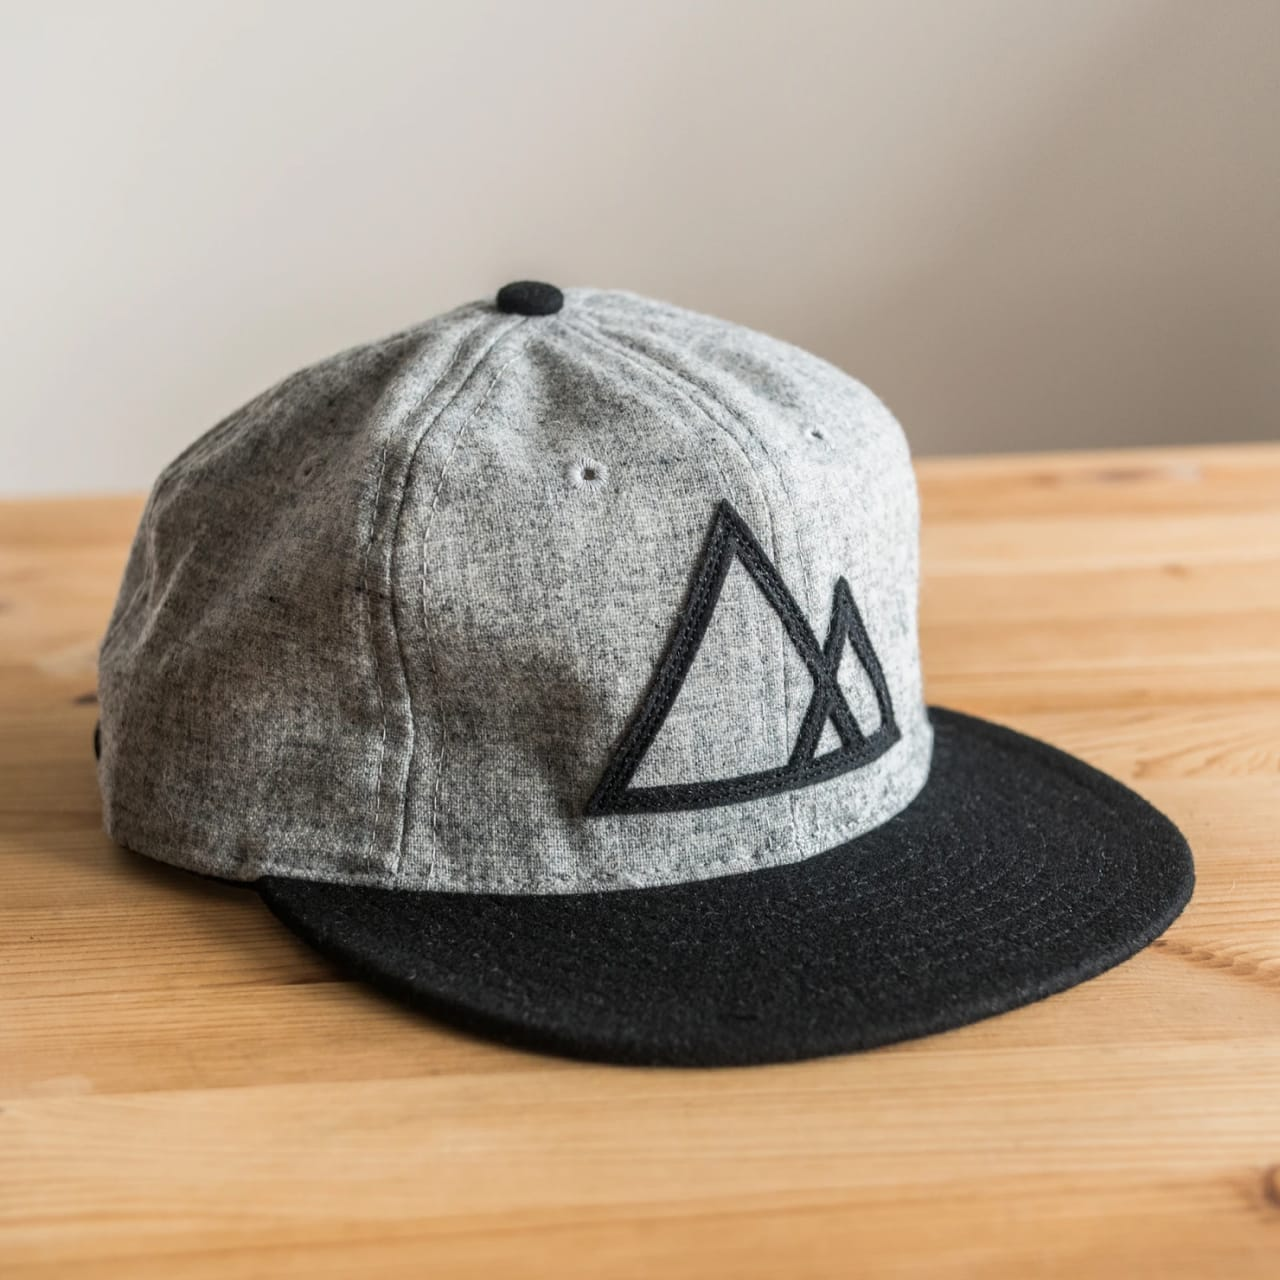 Grey 6-panel baseball hat with black brim, black mountain graphic on front, and light heather gray body.